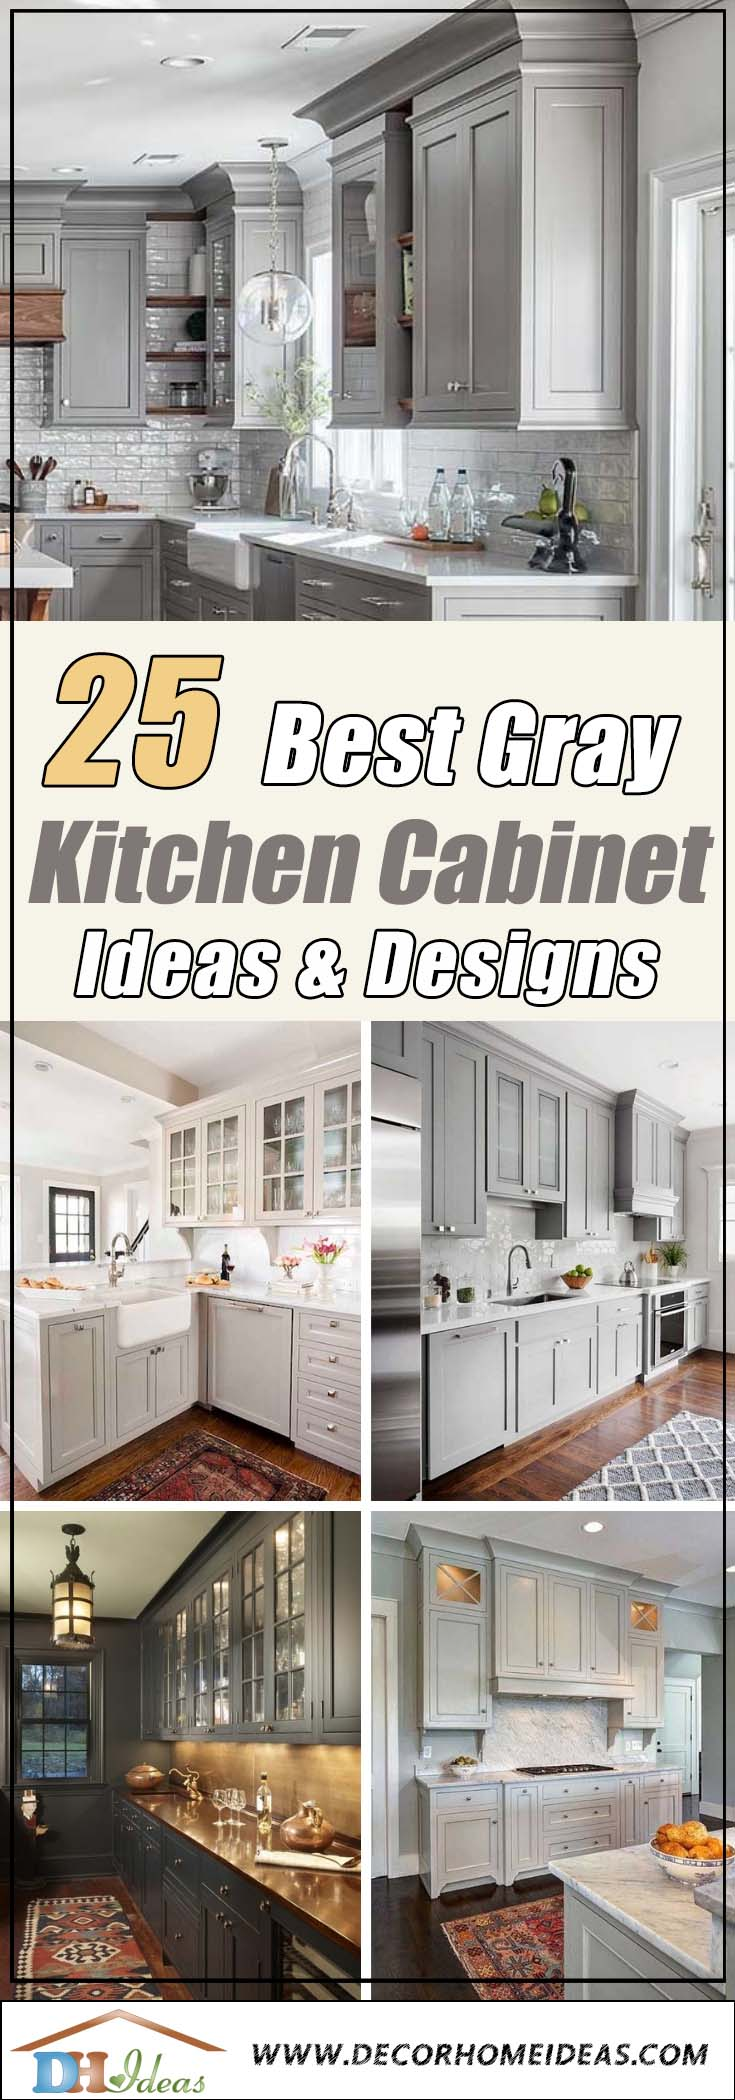 25 Best Gray Kitchen Cabinet Ideas #kitchencabinet #kitchen #gray #cabinets #homedecor #decoratingideas #homedecor